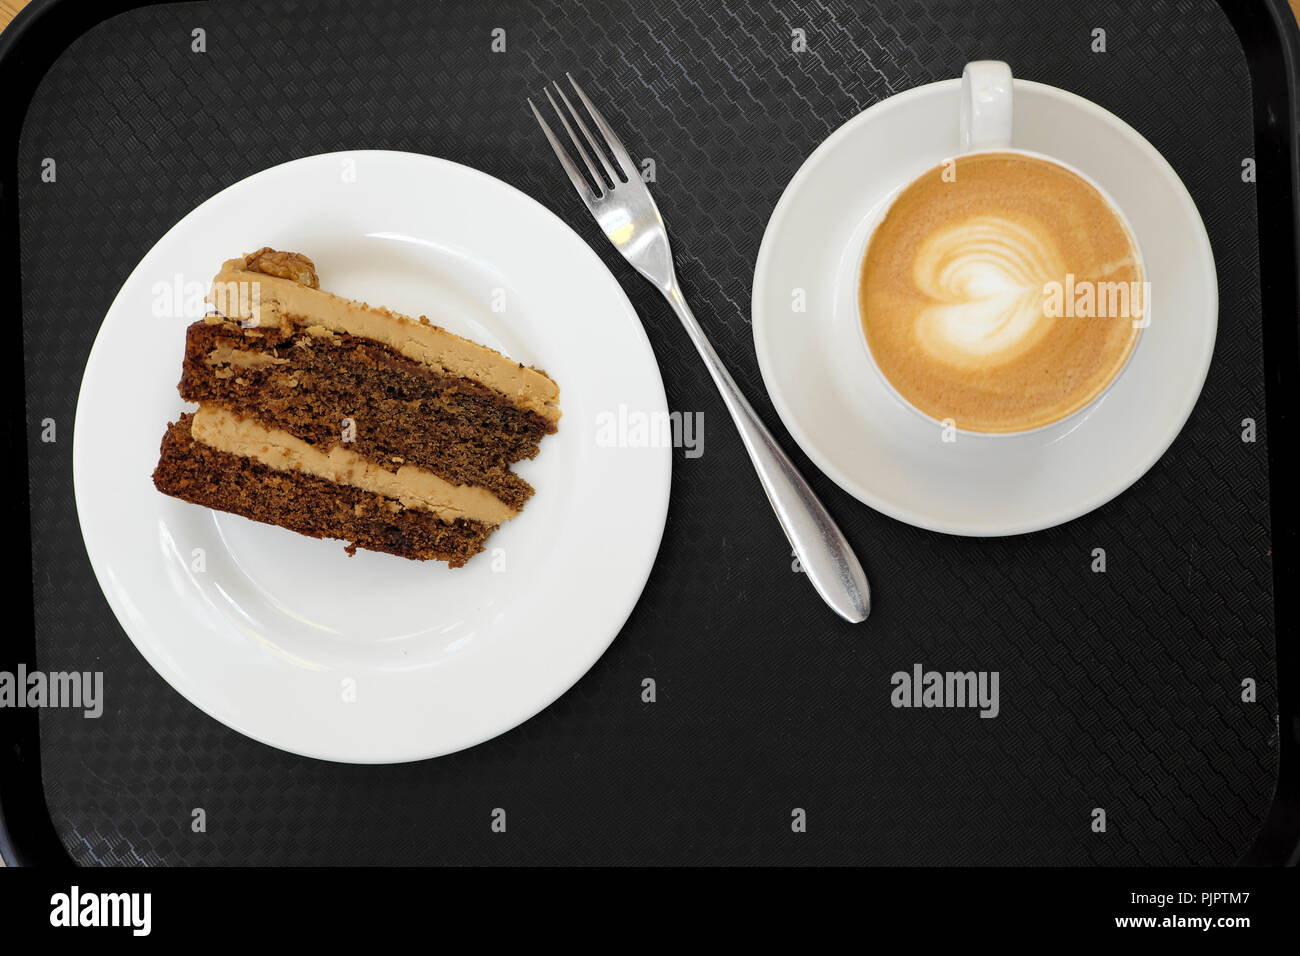 Overhead view of a cup of frothy milky coffee with heart shaped design, fork, chocolate walnut cake on black background in London UK  KATHY DEWITT - Stock Image